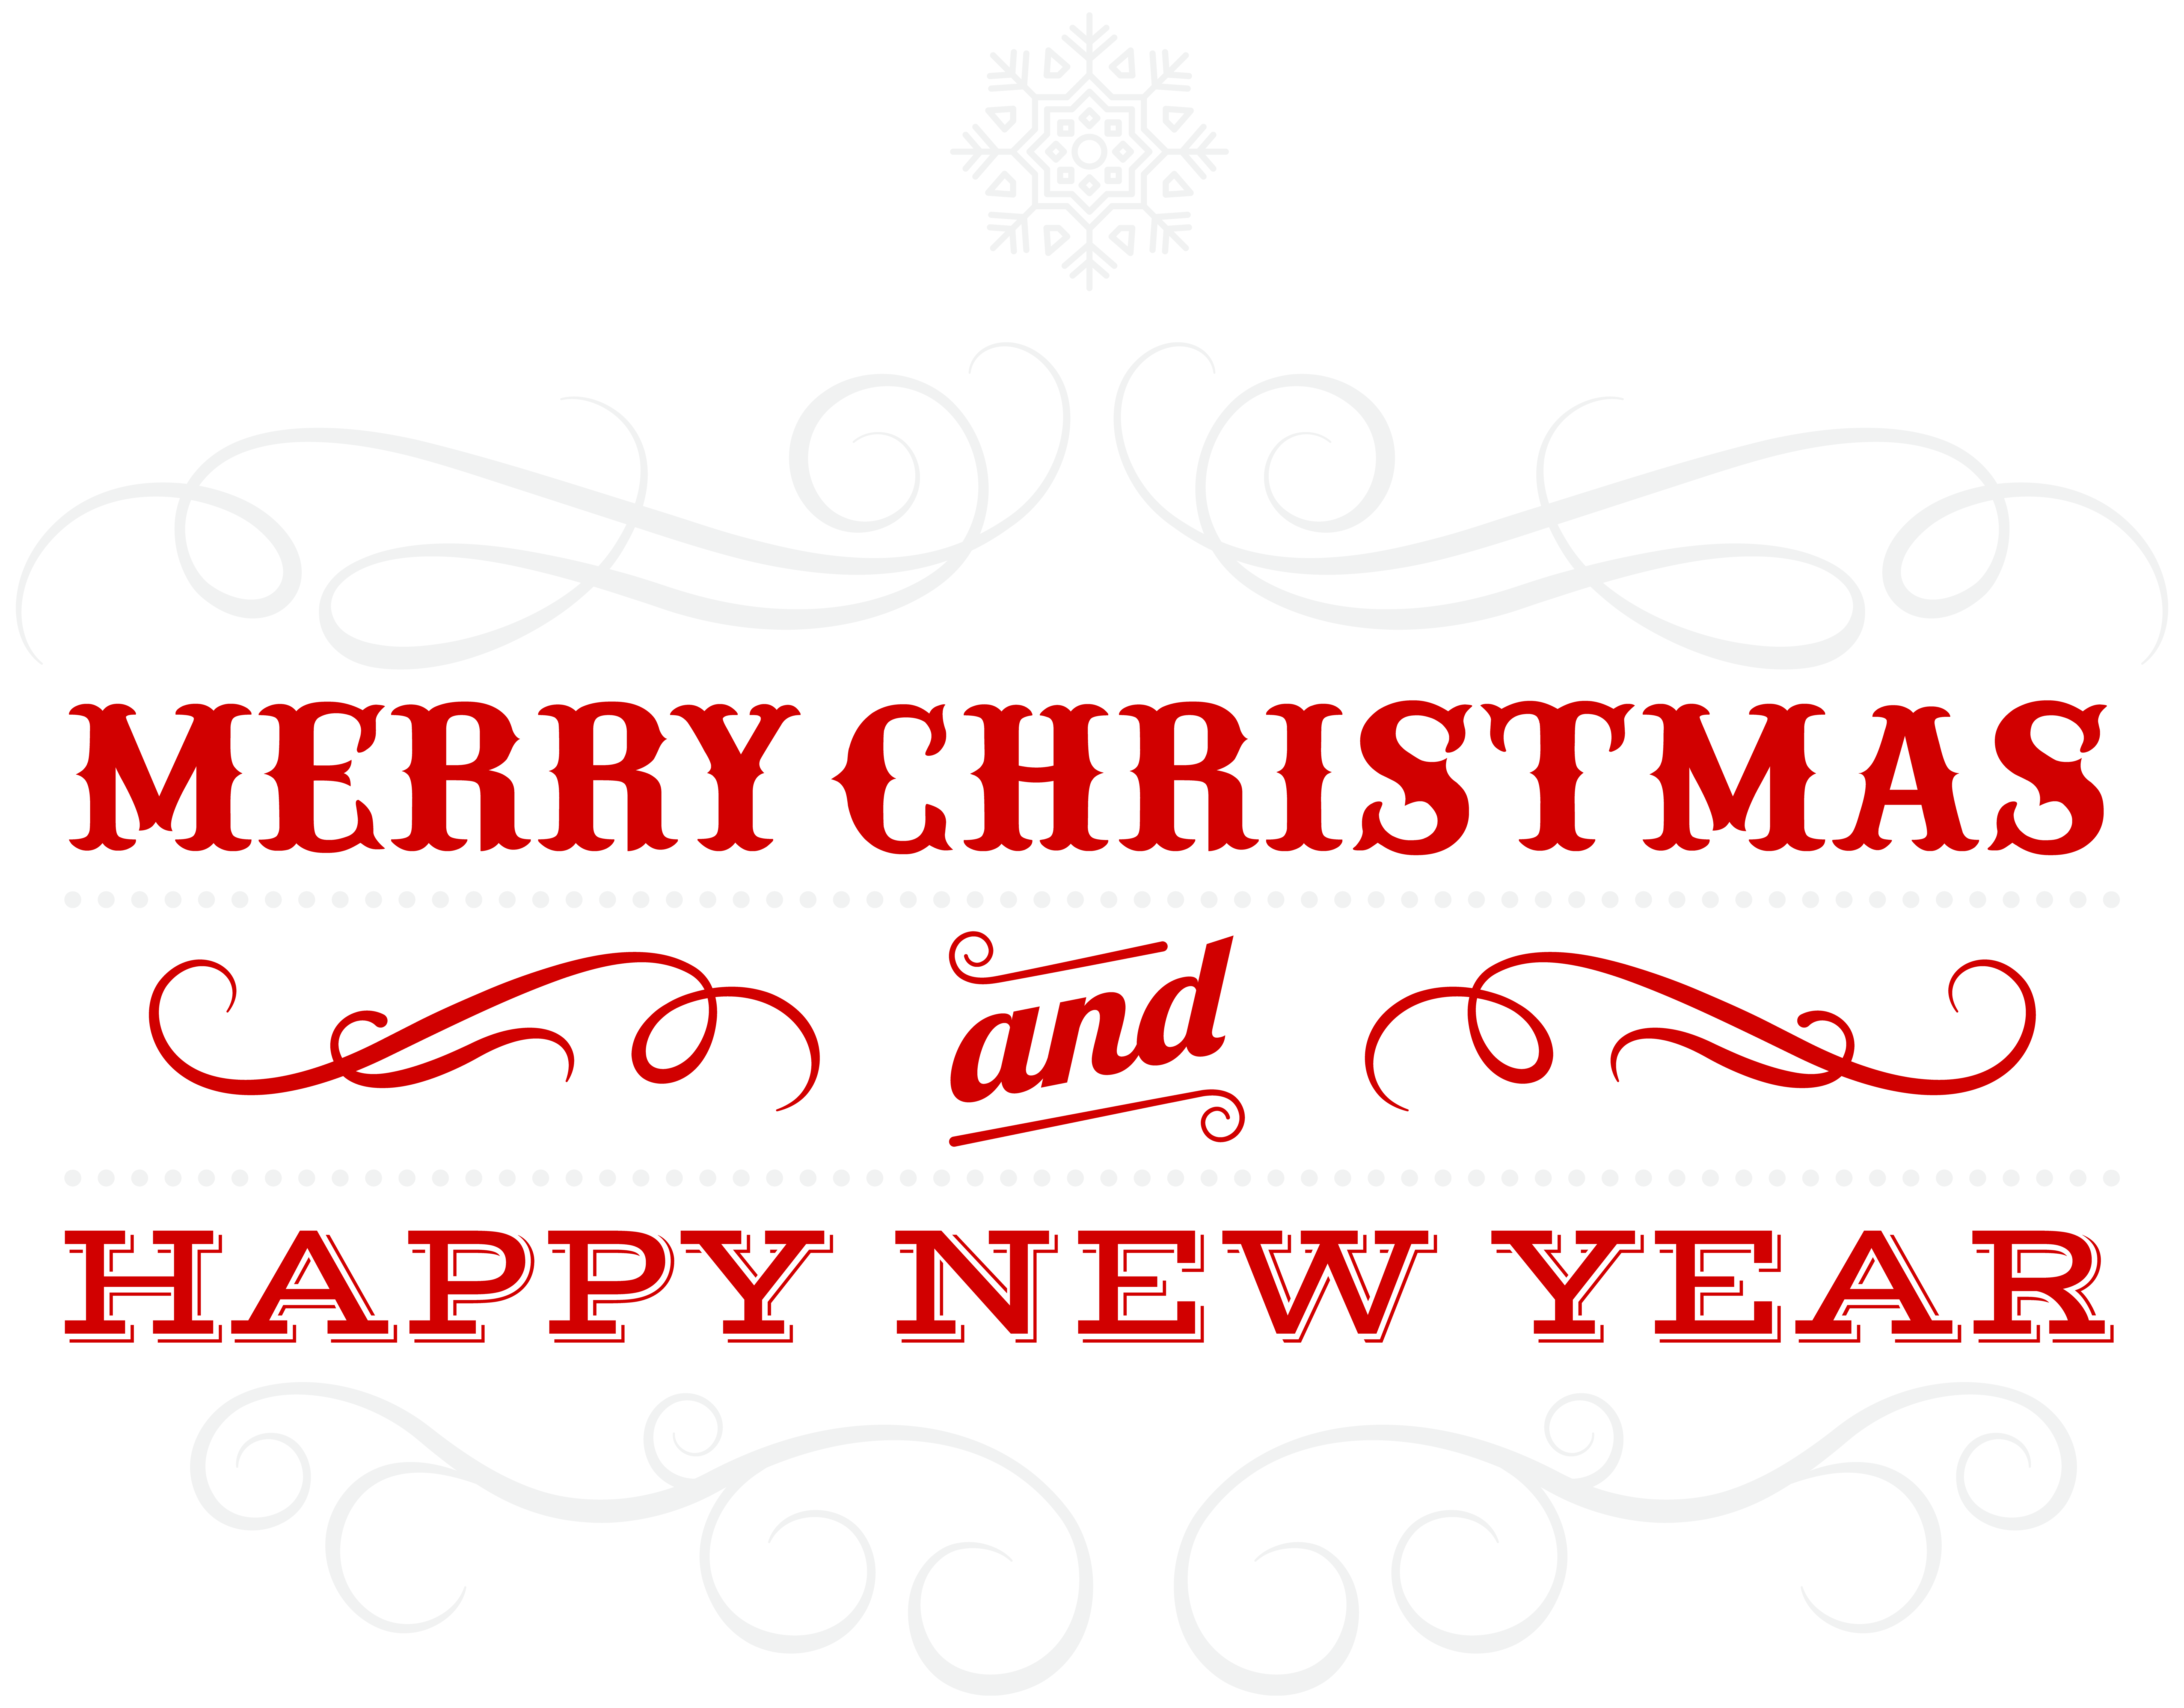 Merry christmas and happy new year png. Transparent clip art image